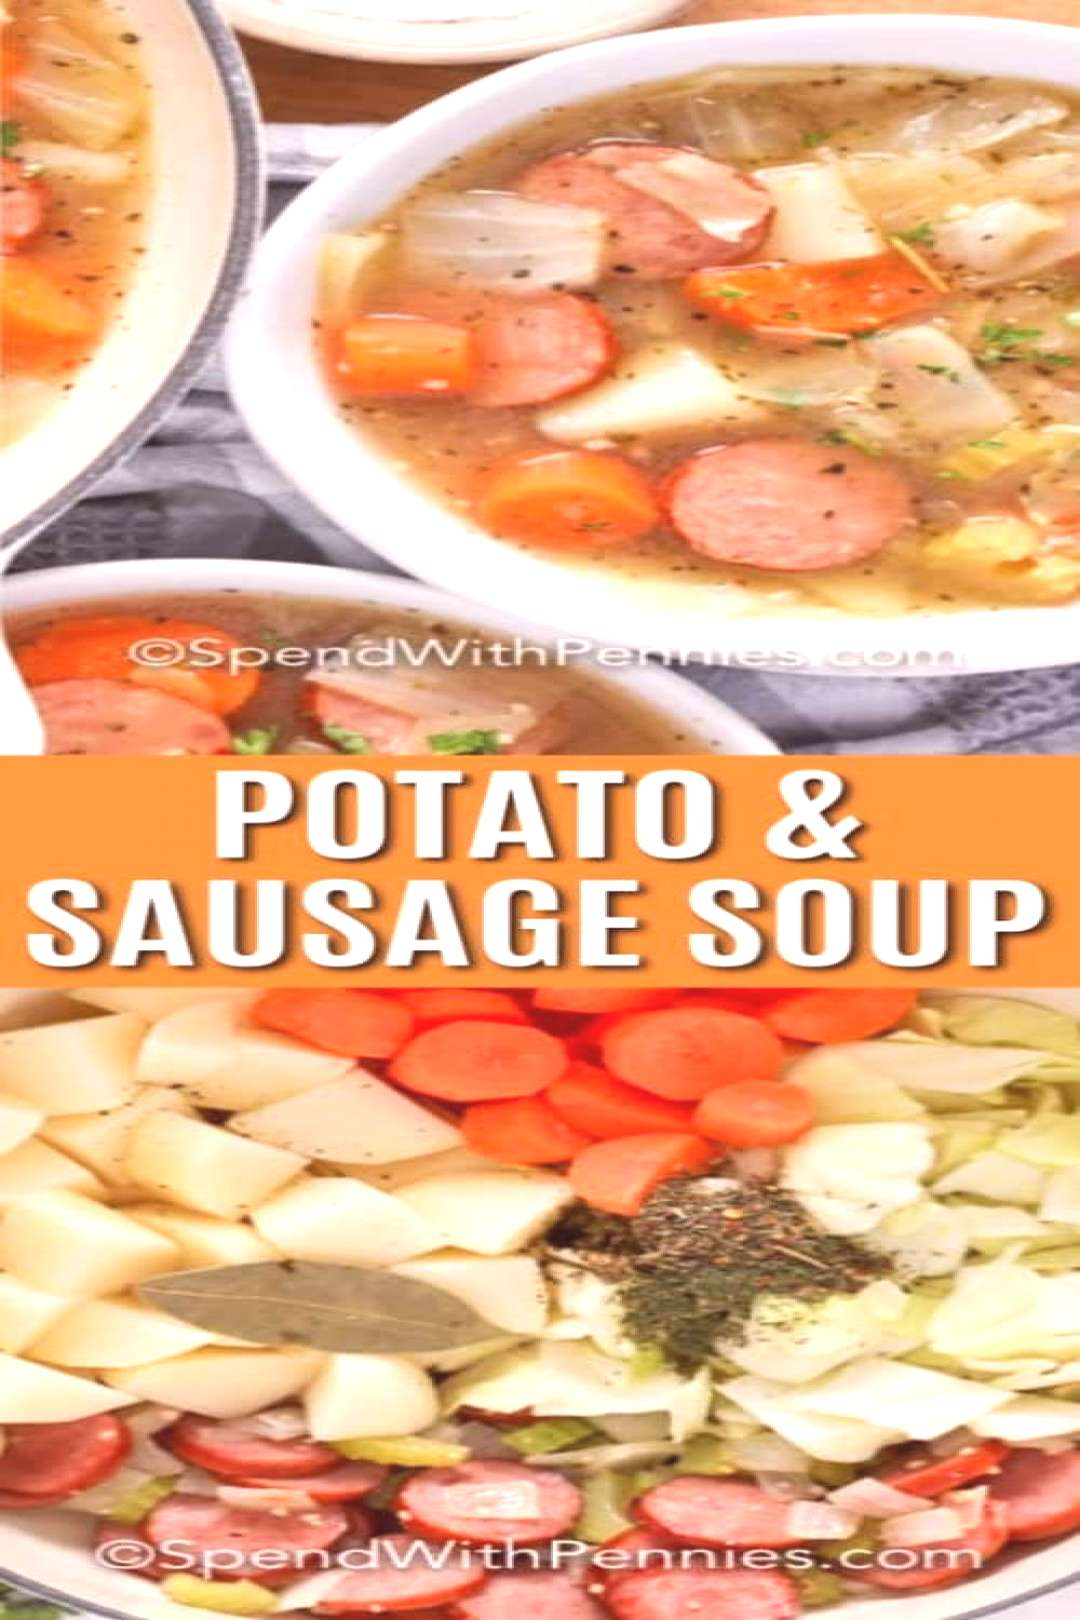 Potato and Sausage Soup Loaded with Veggies! - Spend With Pennies - -